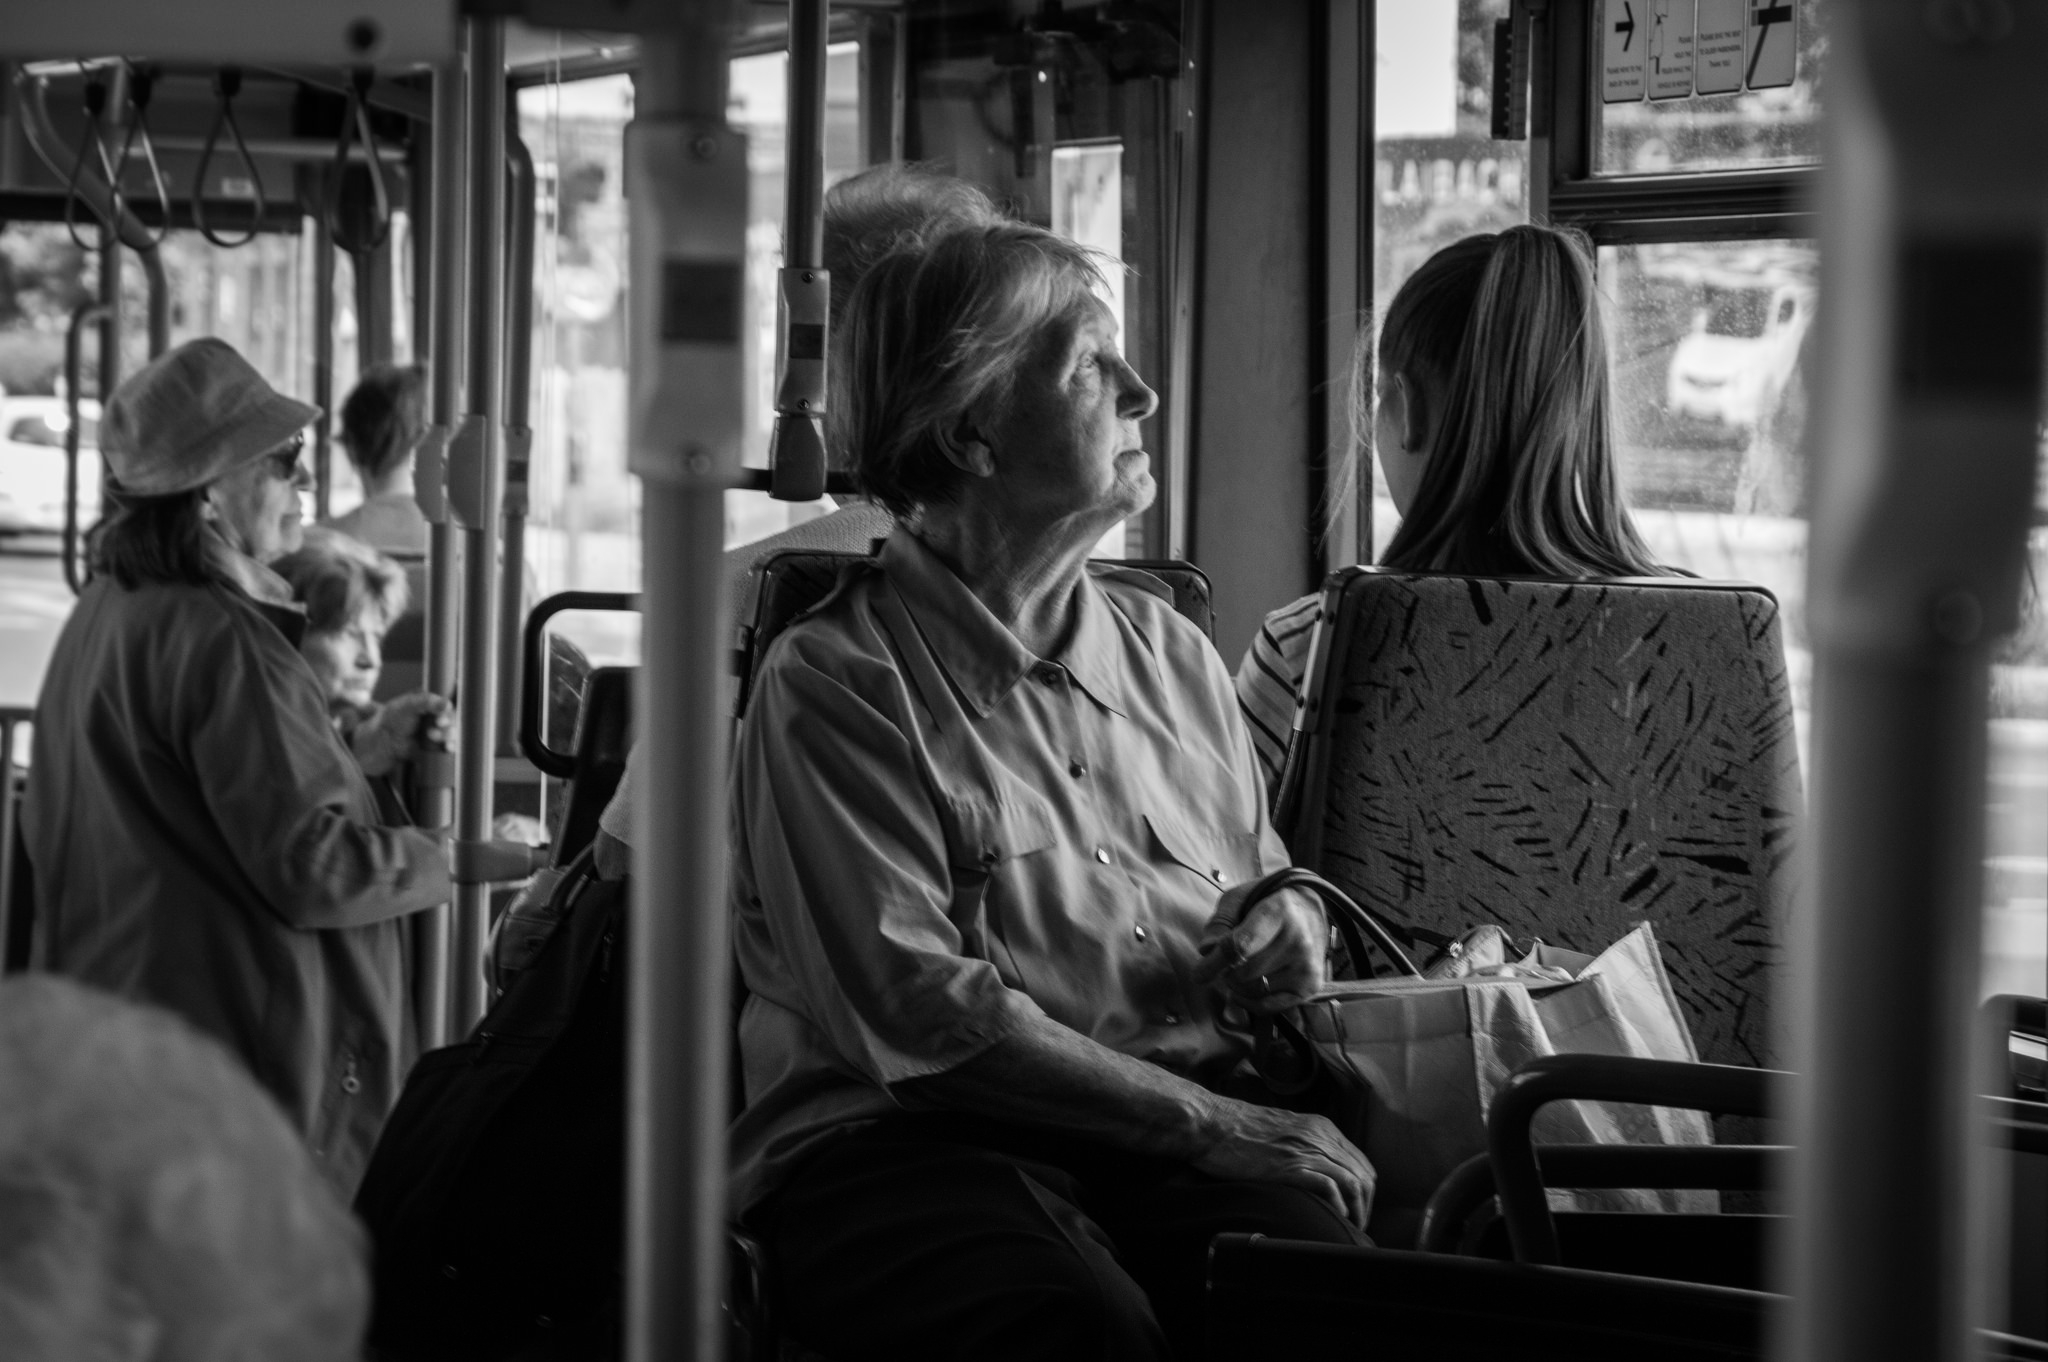 Older person on bus - portrait